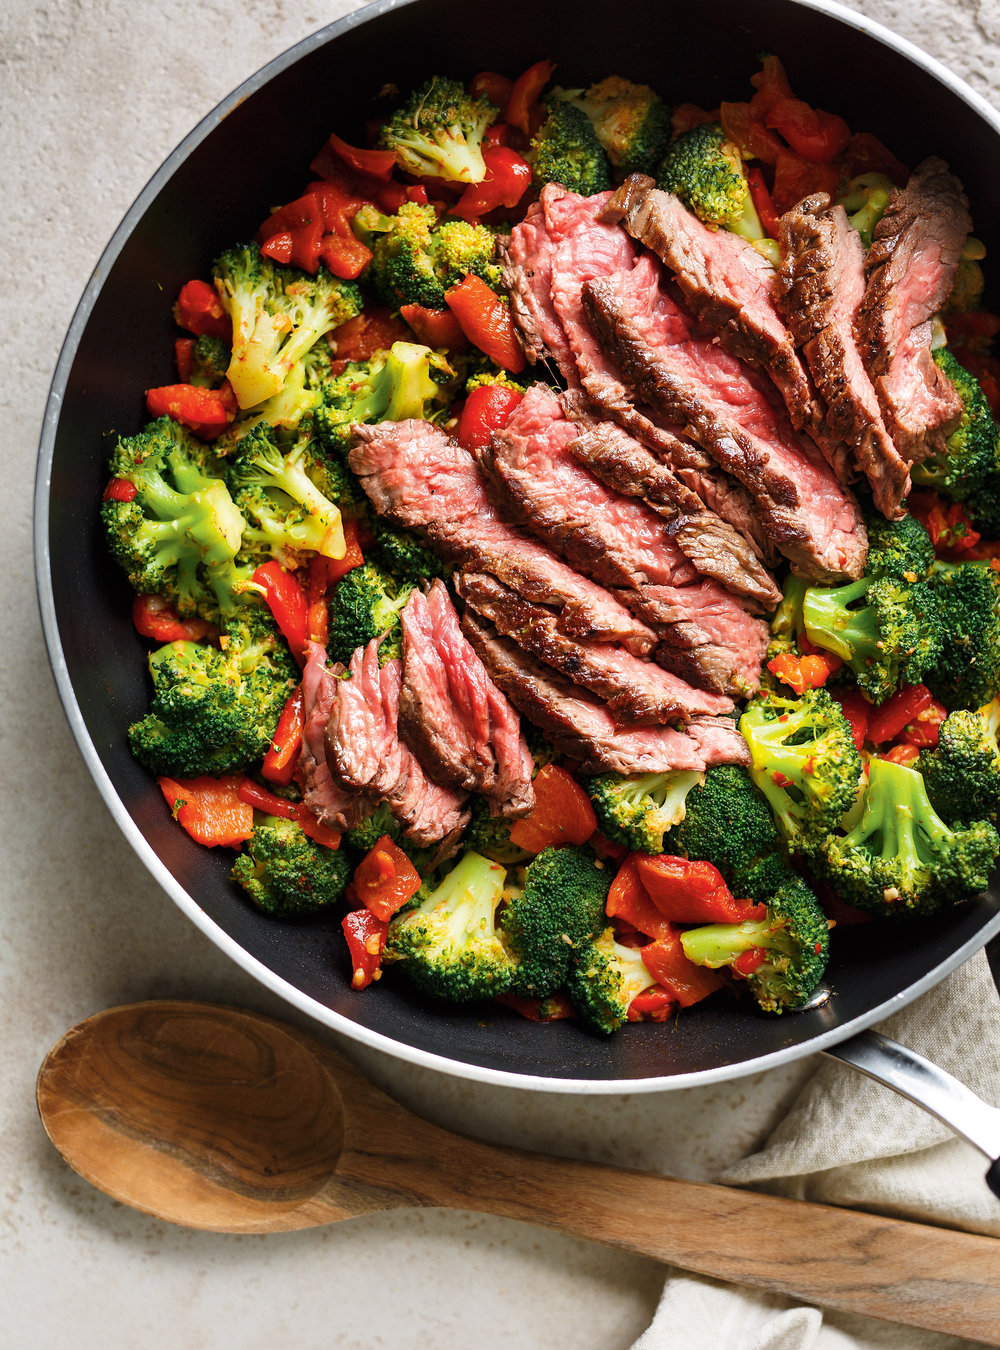 Grilled Flap Steak With Broccoli And Bell Peppers Ricardo